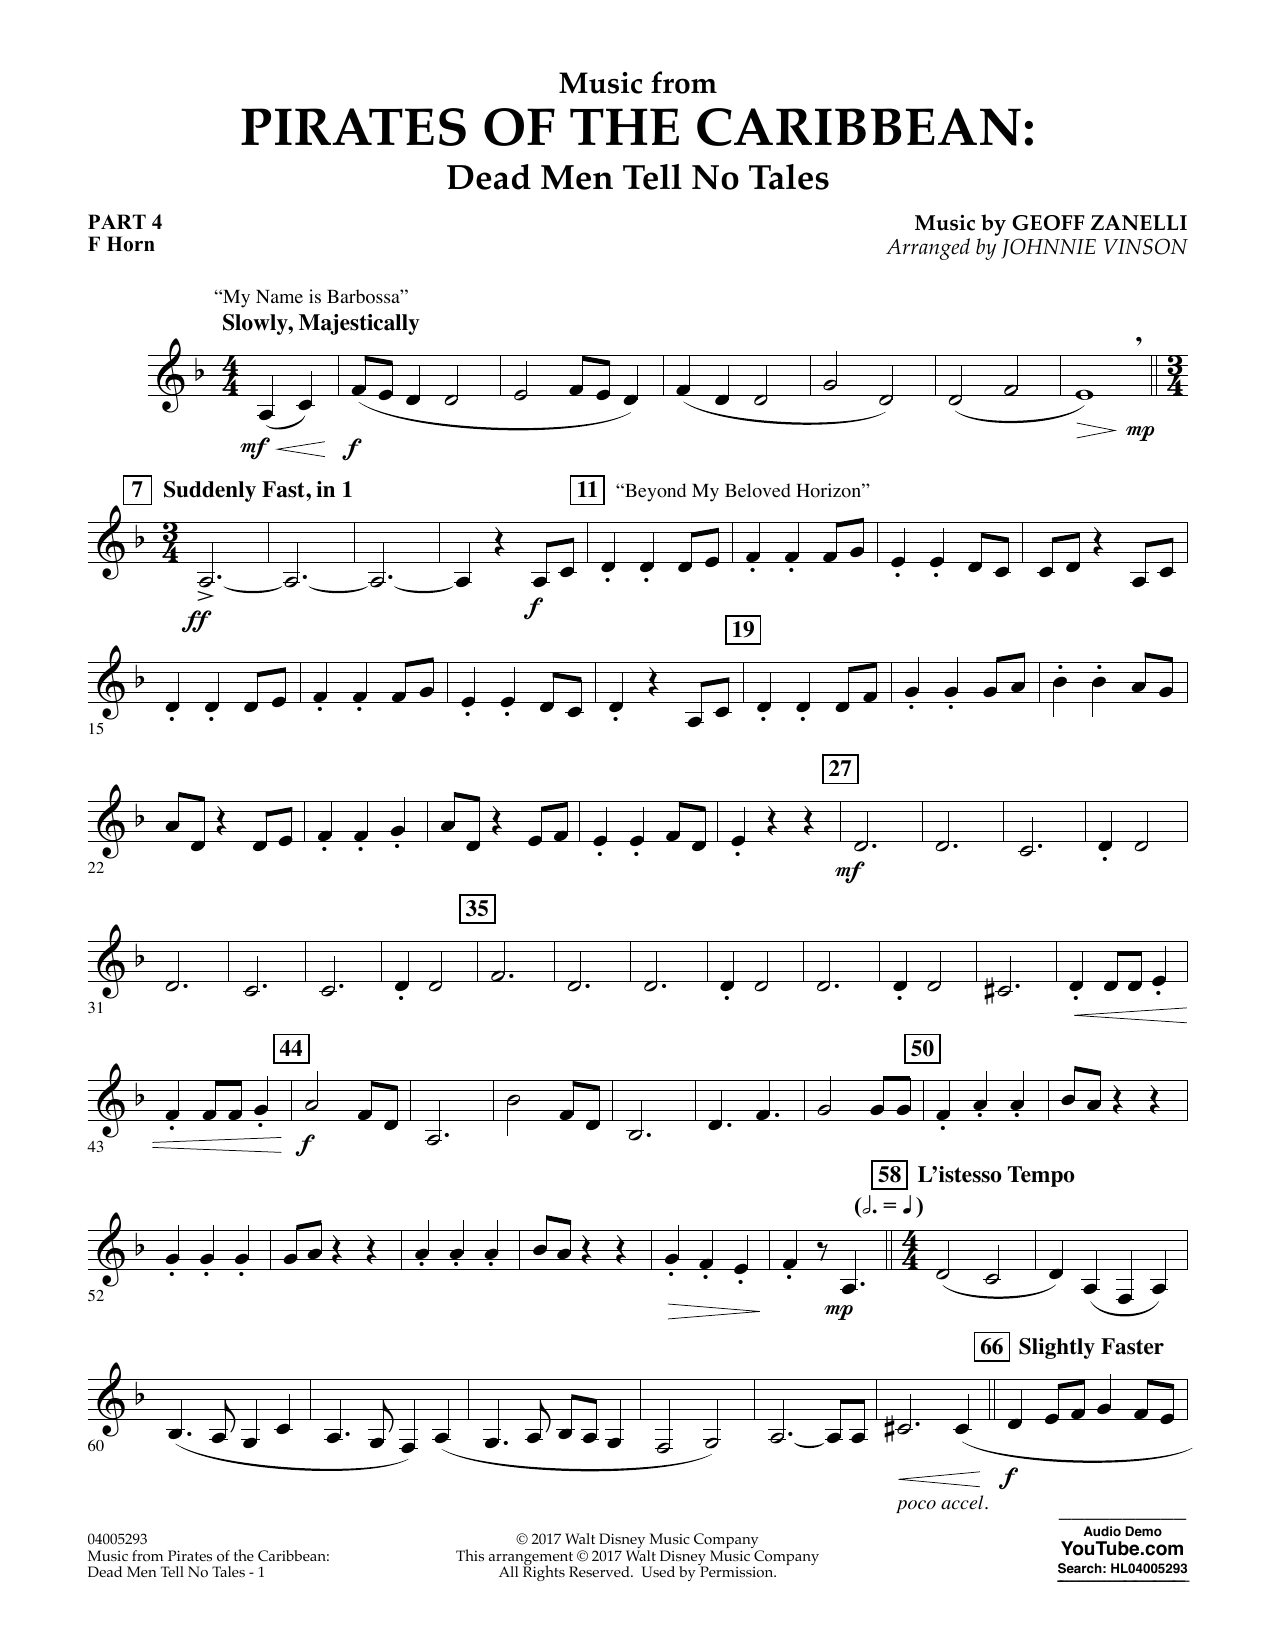 Johnnie Vinson Music from Pirates of the Caribbean: Dead Men Tell No Tales - Pt.4 - F Horn sheet music notes and chords. Download Printable PDF.